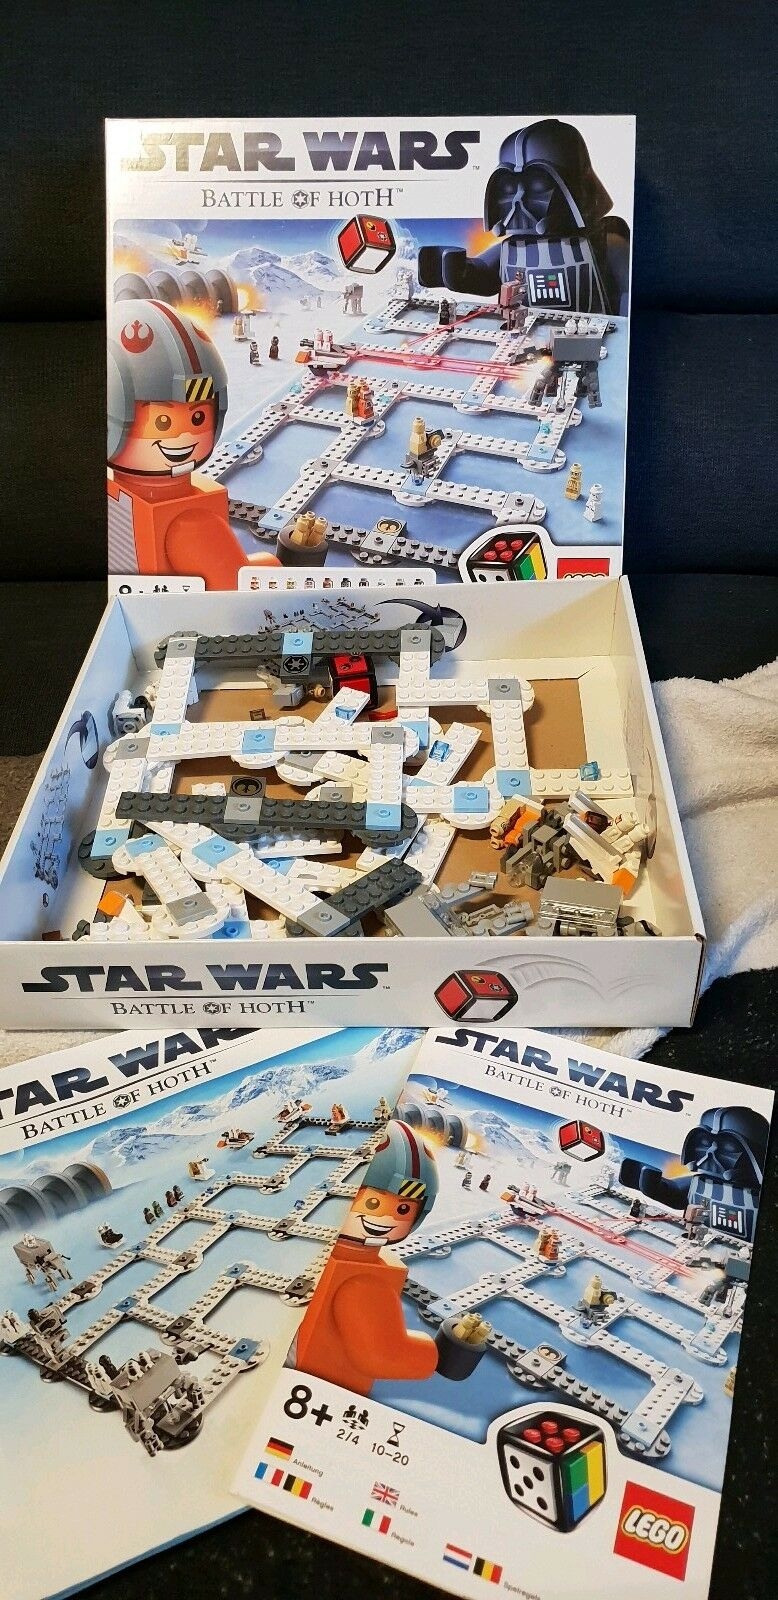 LEGO Star Wars 3866 - The Battle of Hoth